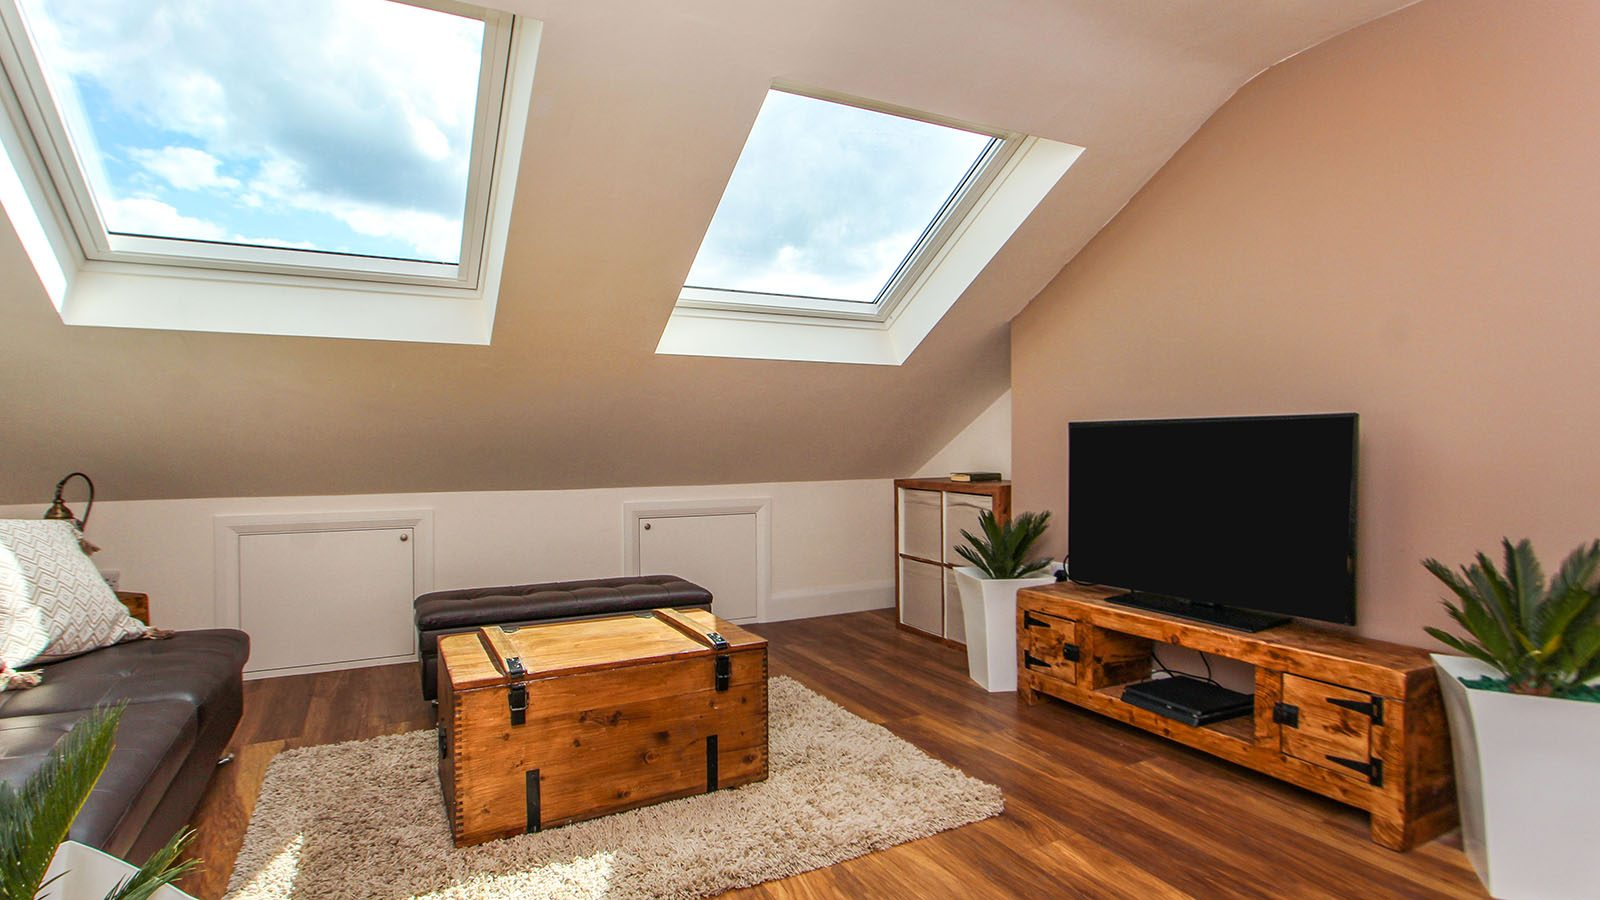 Loft conversion living room - how much does a loft conversion cost